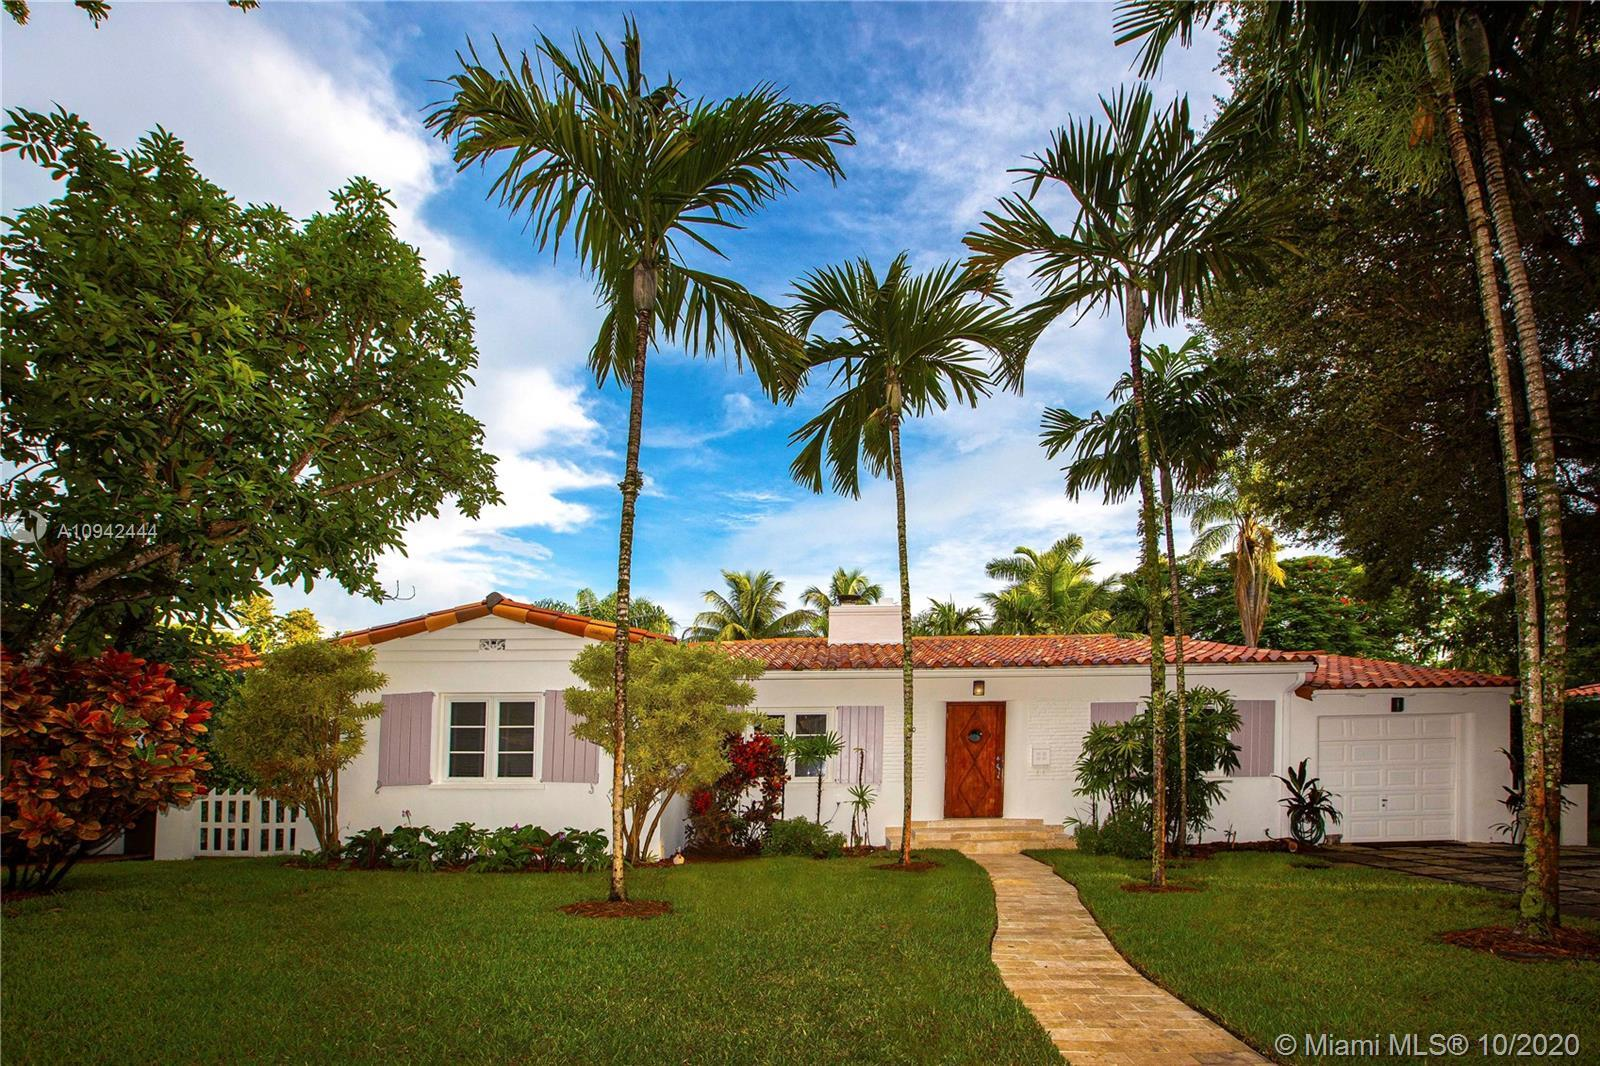 Spectacular deco home just blocks from the Venetian Pool. Fully updated 4-Bedroom 3-bath on a double